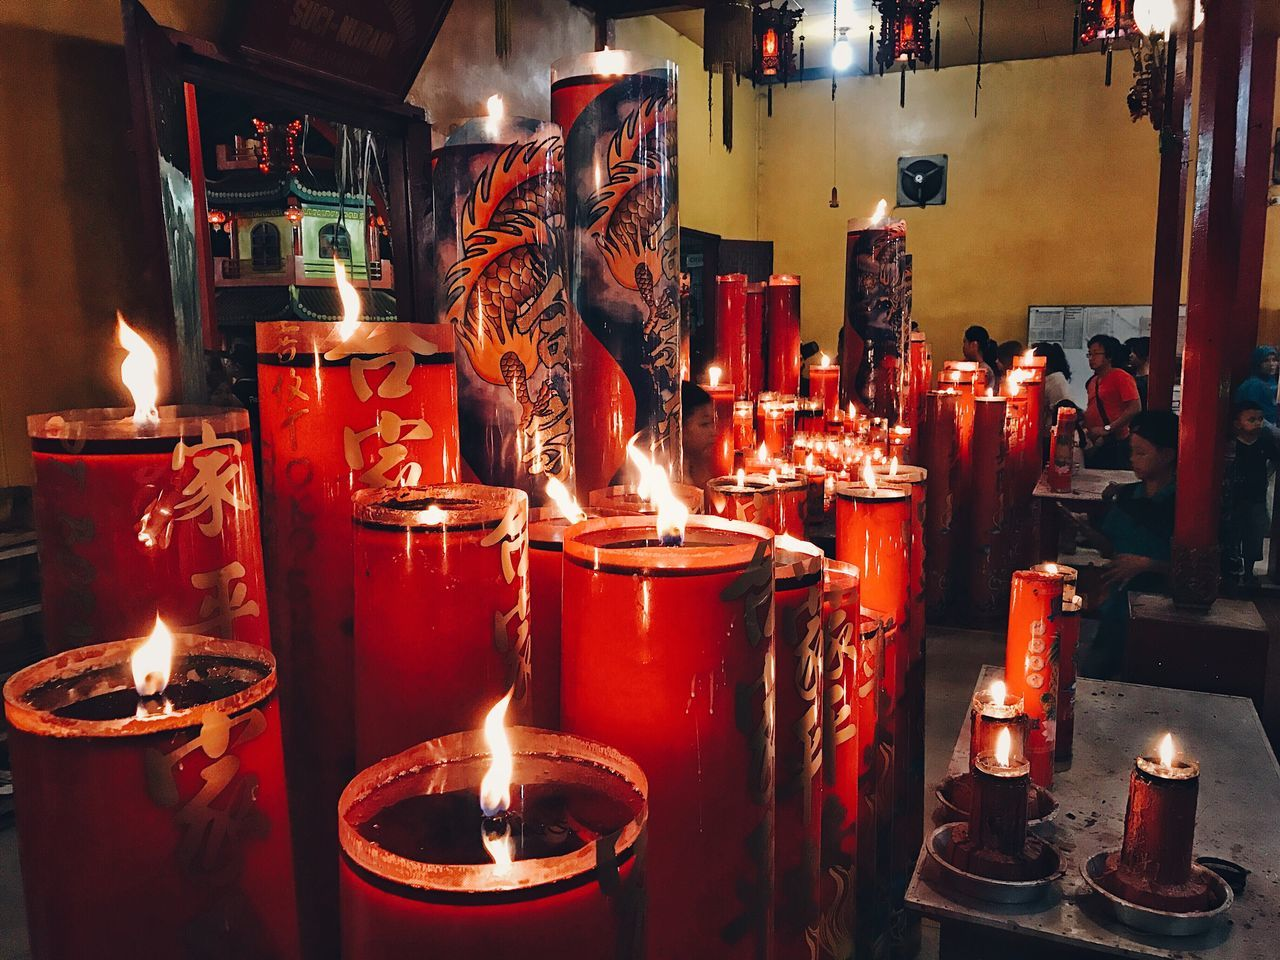 flame, candle, burning, heat - temperature, glowing, spirituality, religion, illuminated, real people, indoors, red, place of worship, standing, one person, people